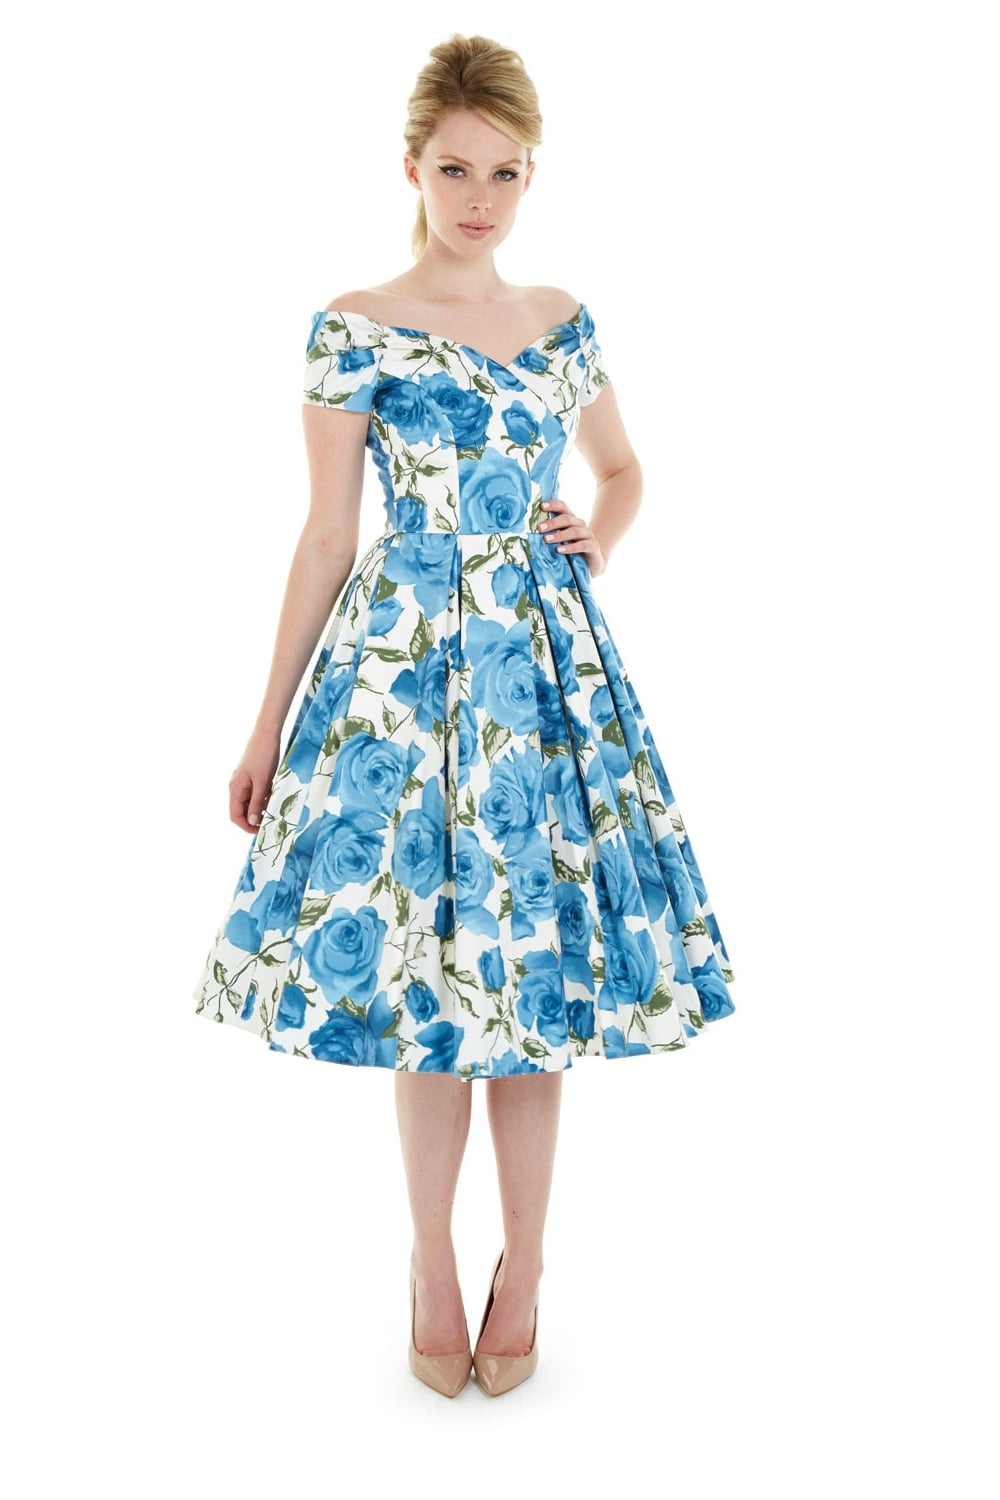 Modern Prom Dresses In Kent Crest - Womens Dresses & Gowns ...